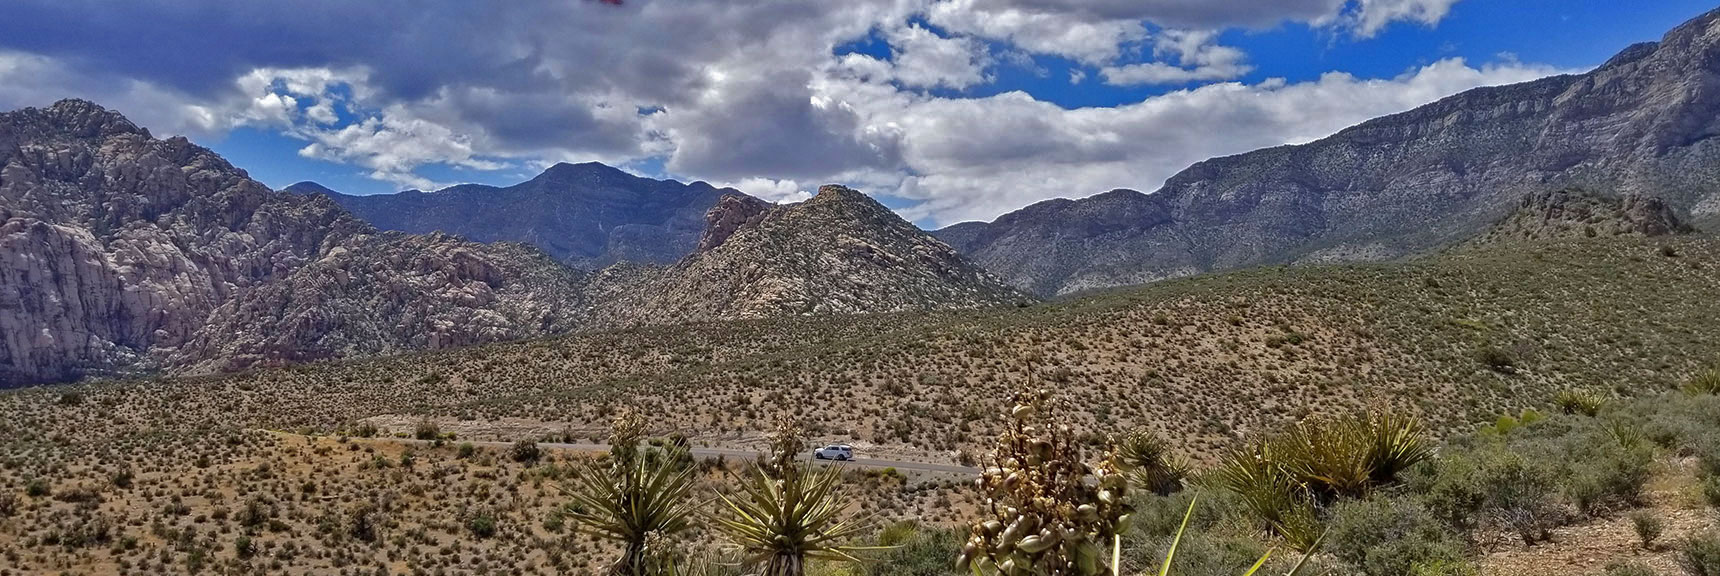 Red Rock National Park View of White Mountain from Top of Scenic Drive